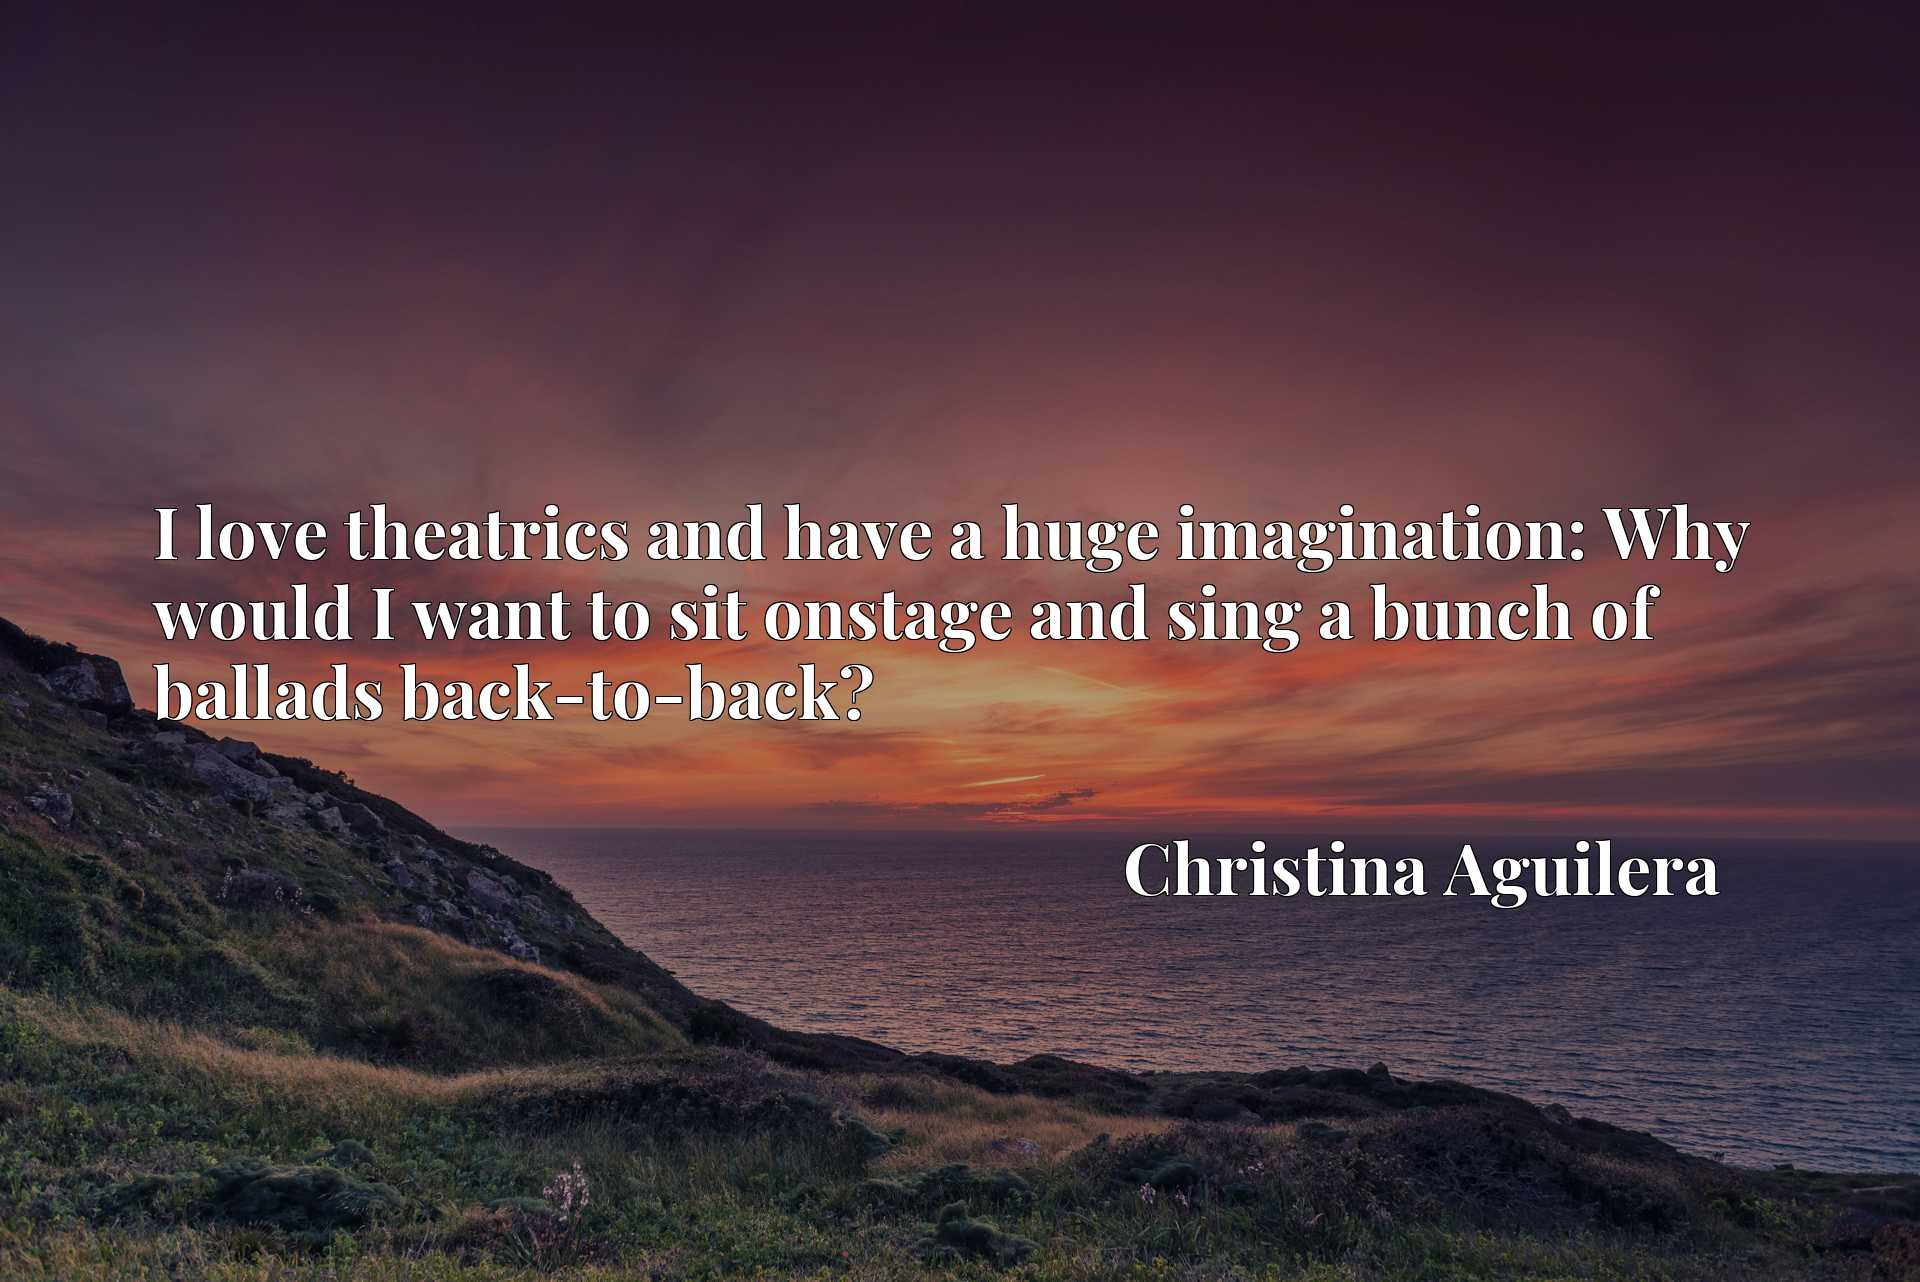 Quote Picture :I love theatrics and have a huge imagination: Why would I want to sit onstage and sing a bunch of ballads back-to-back?